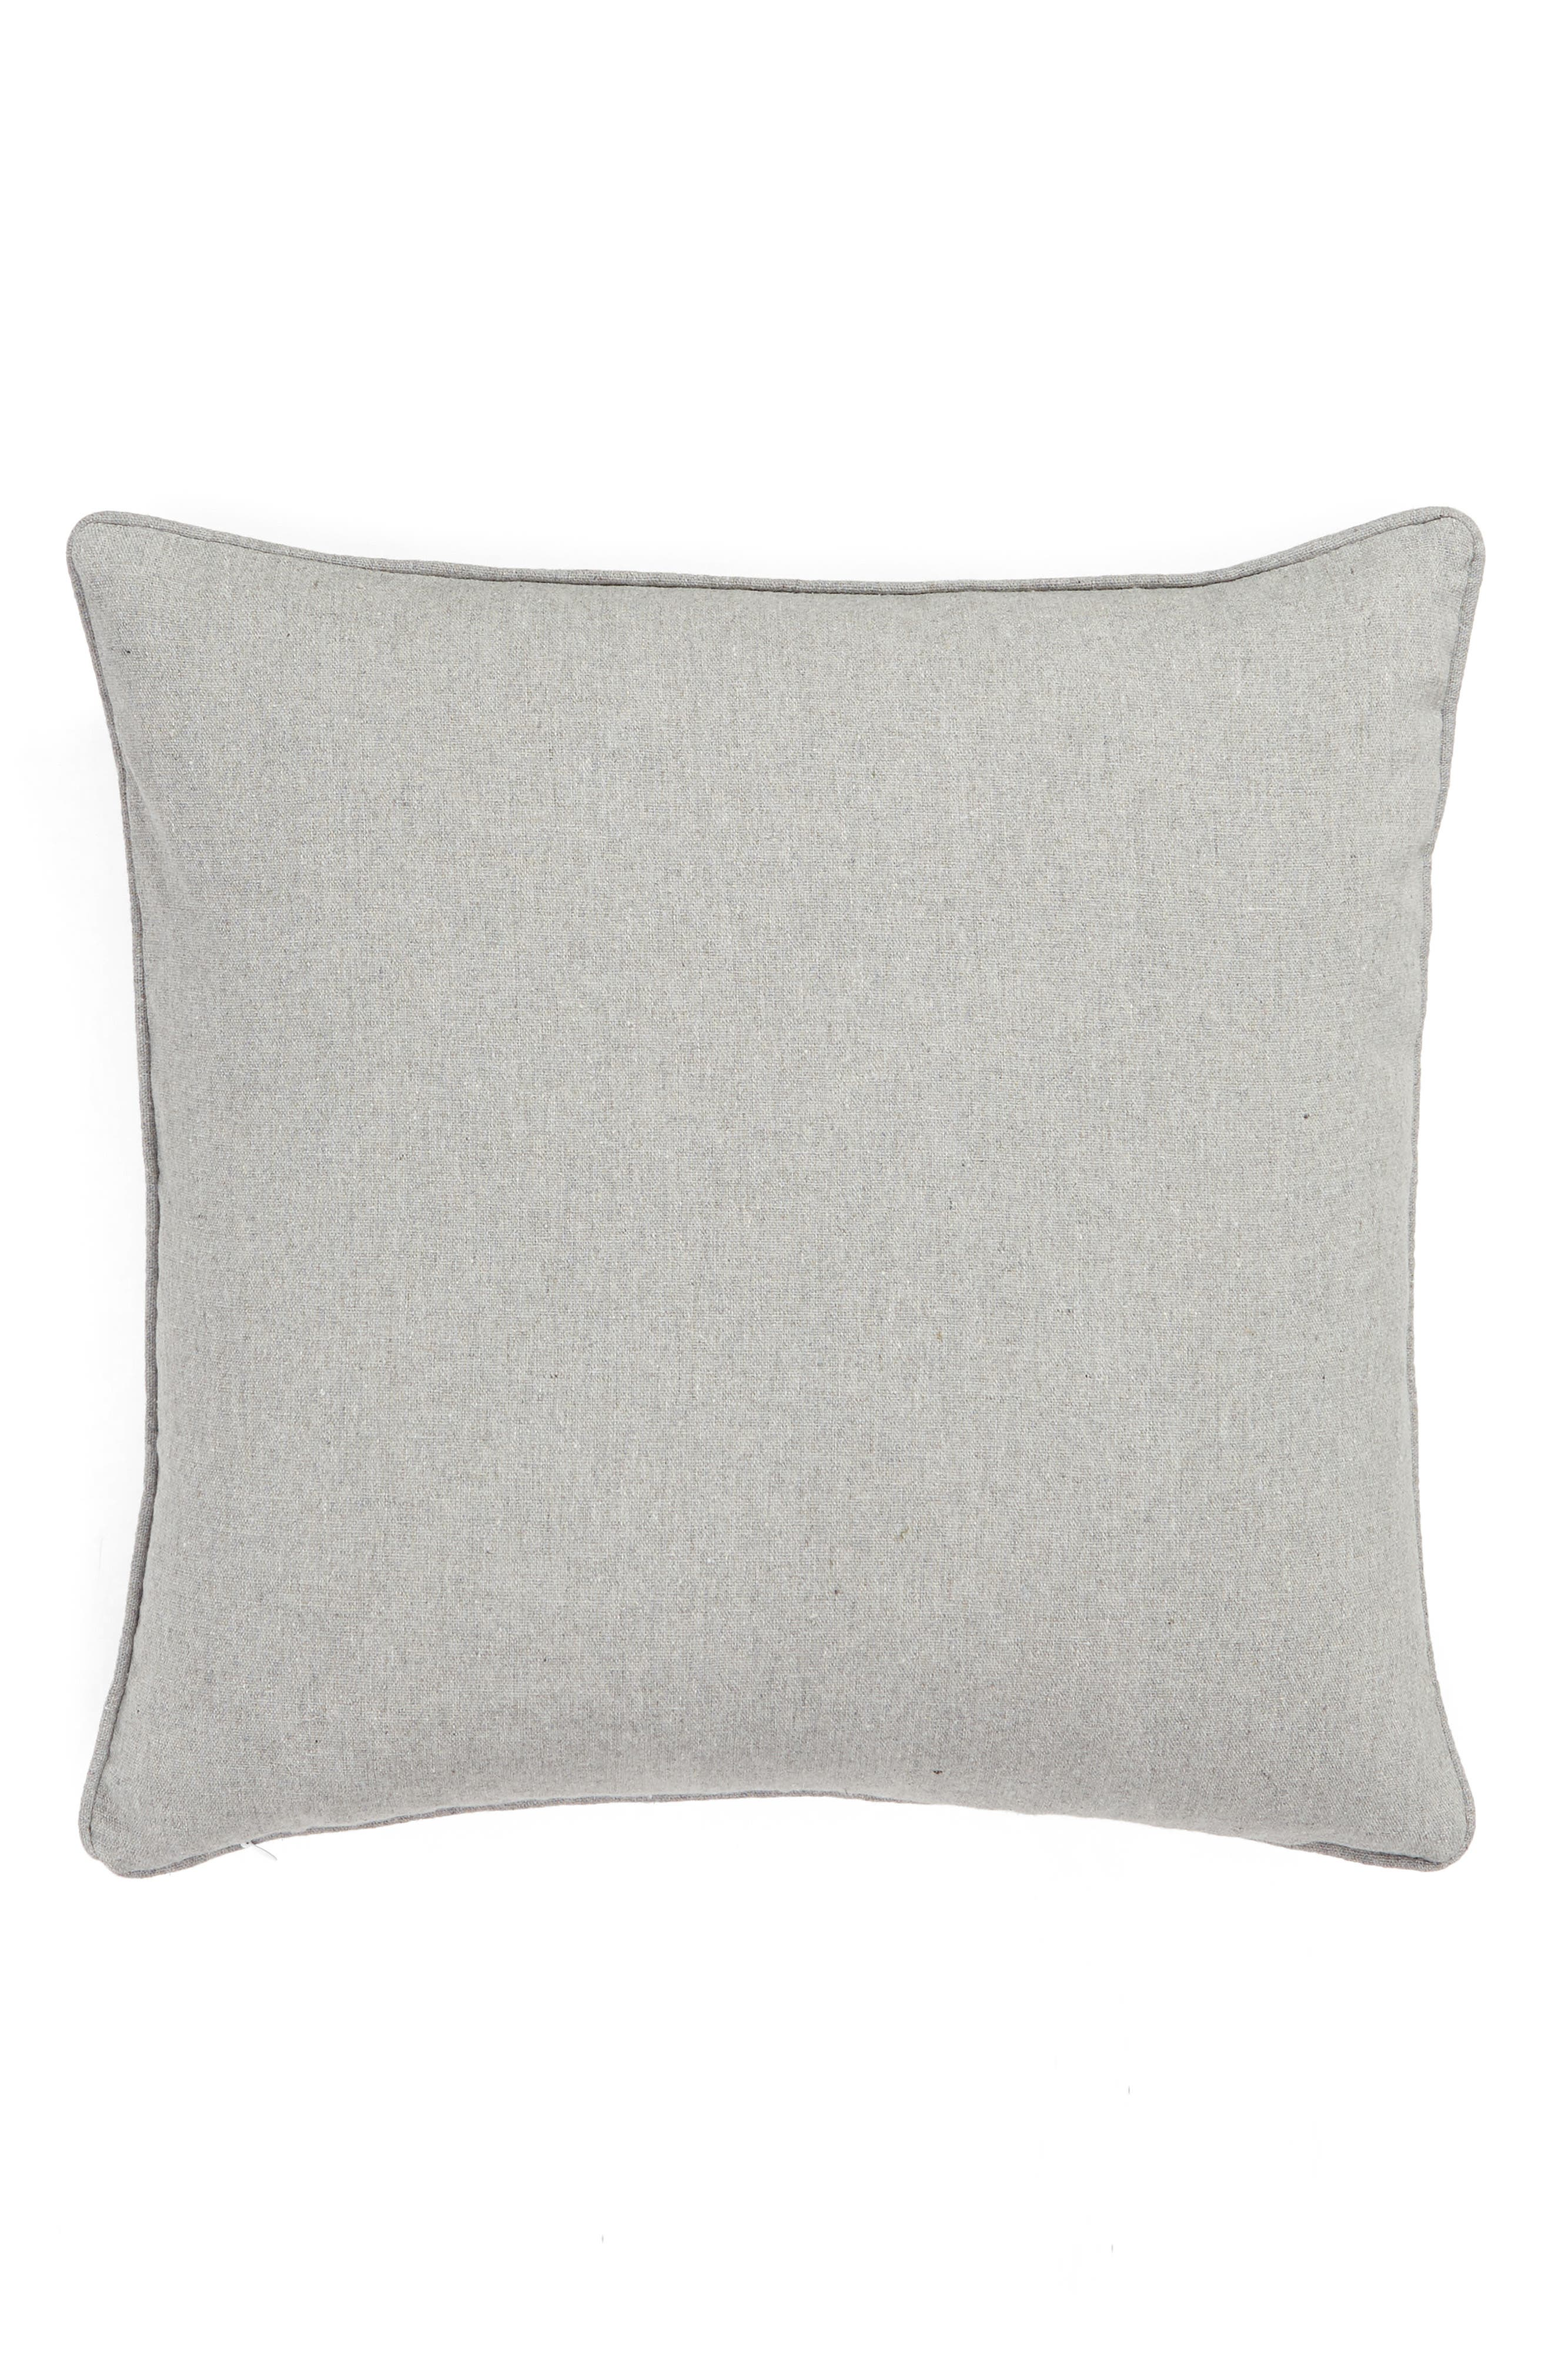 Eyes for You Accent Pillow,                             Alternate thumbnail 2, color,                             GREY